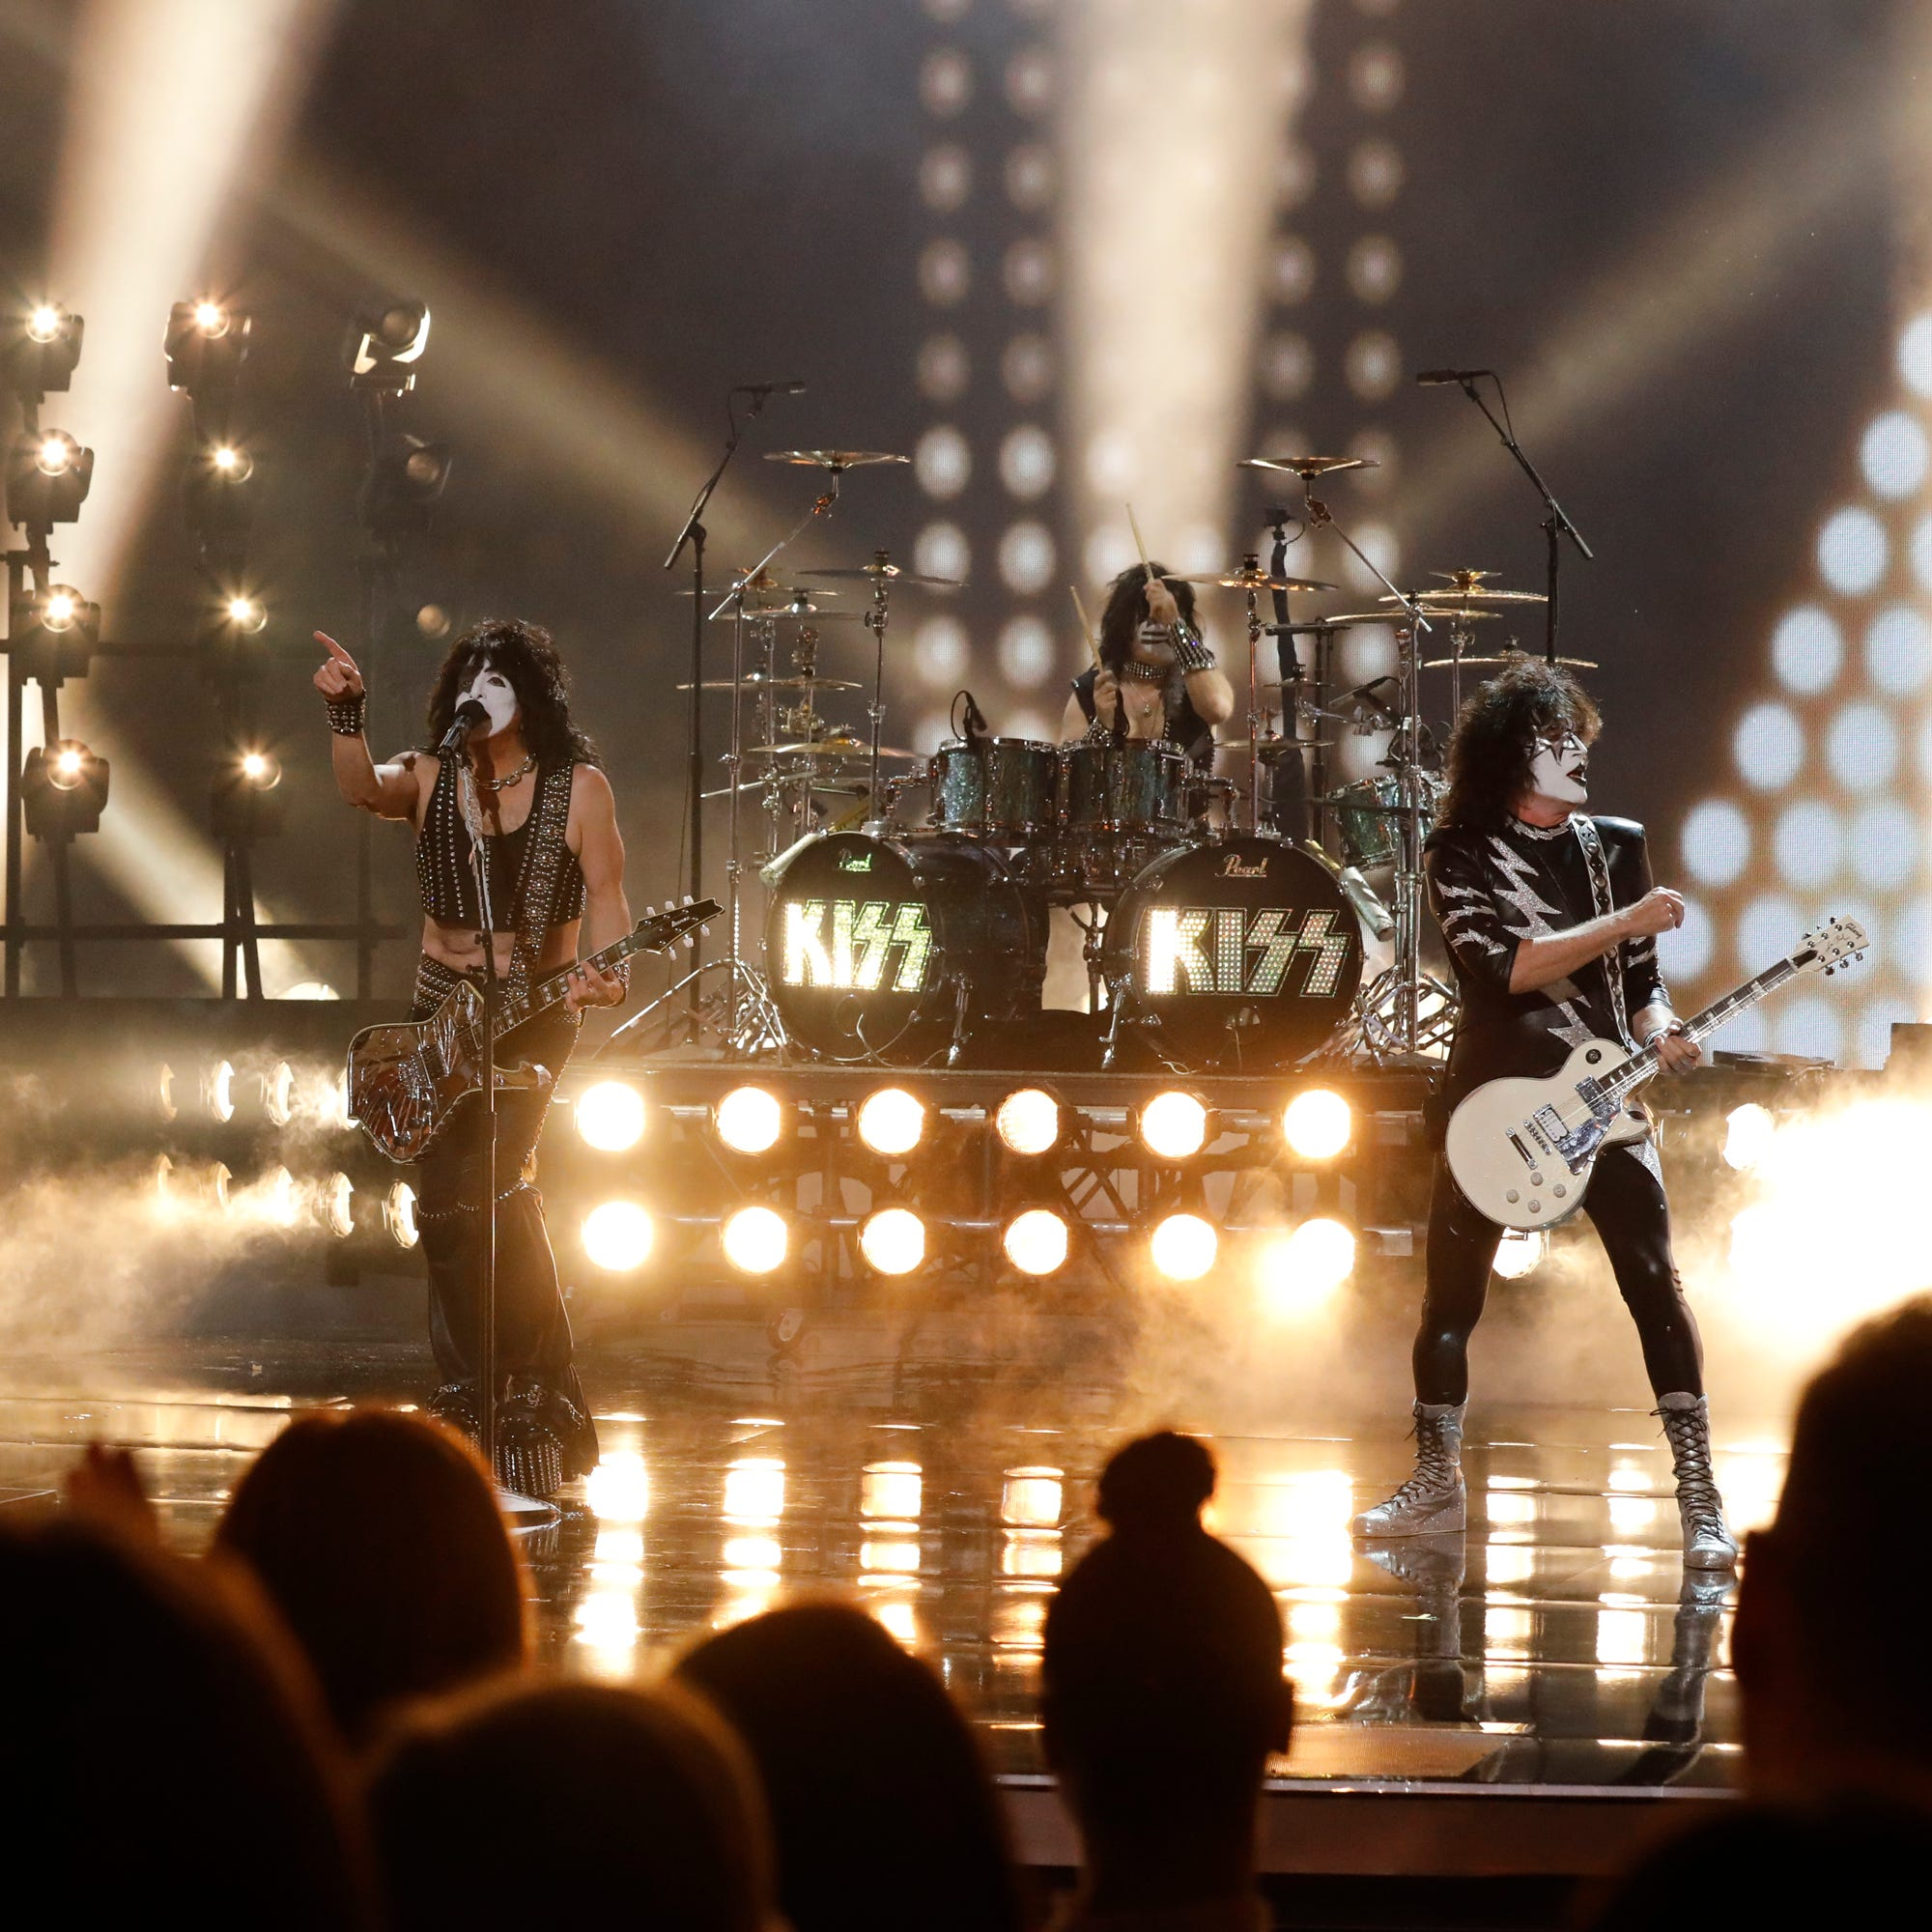 Kiss announces farewell tour with performance of 'Detroit Rock City'